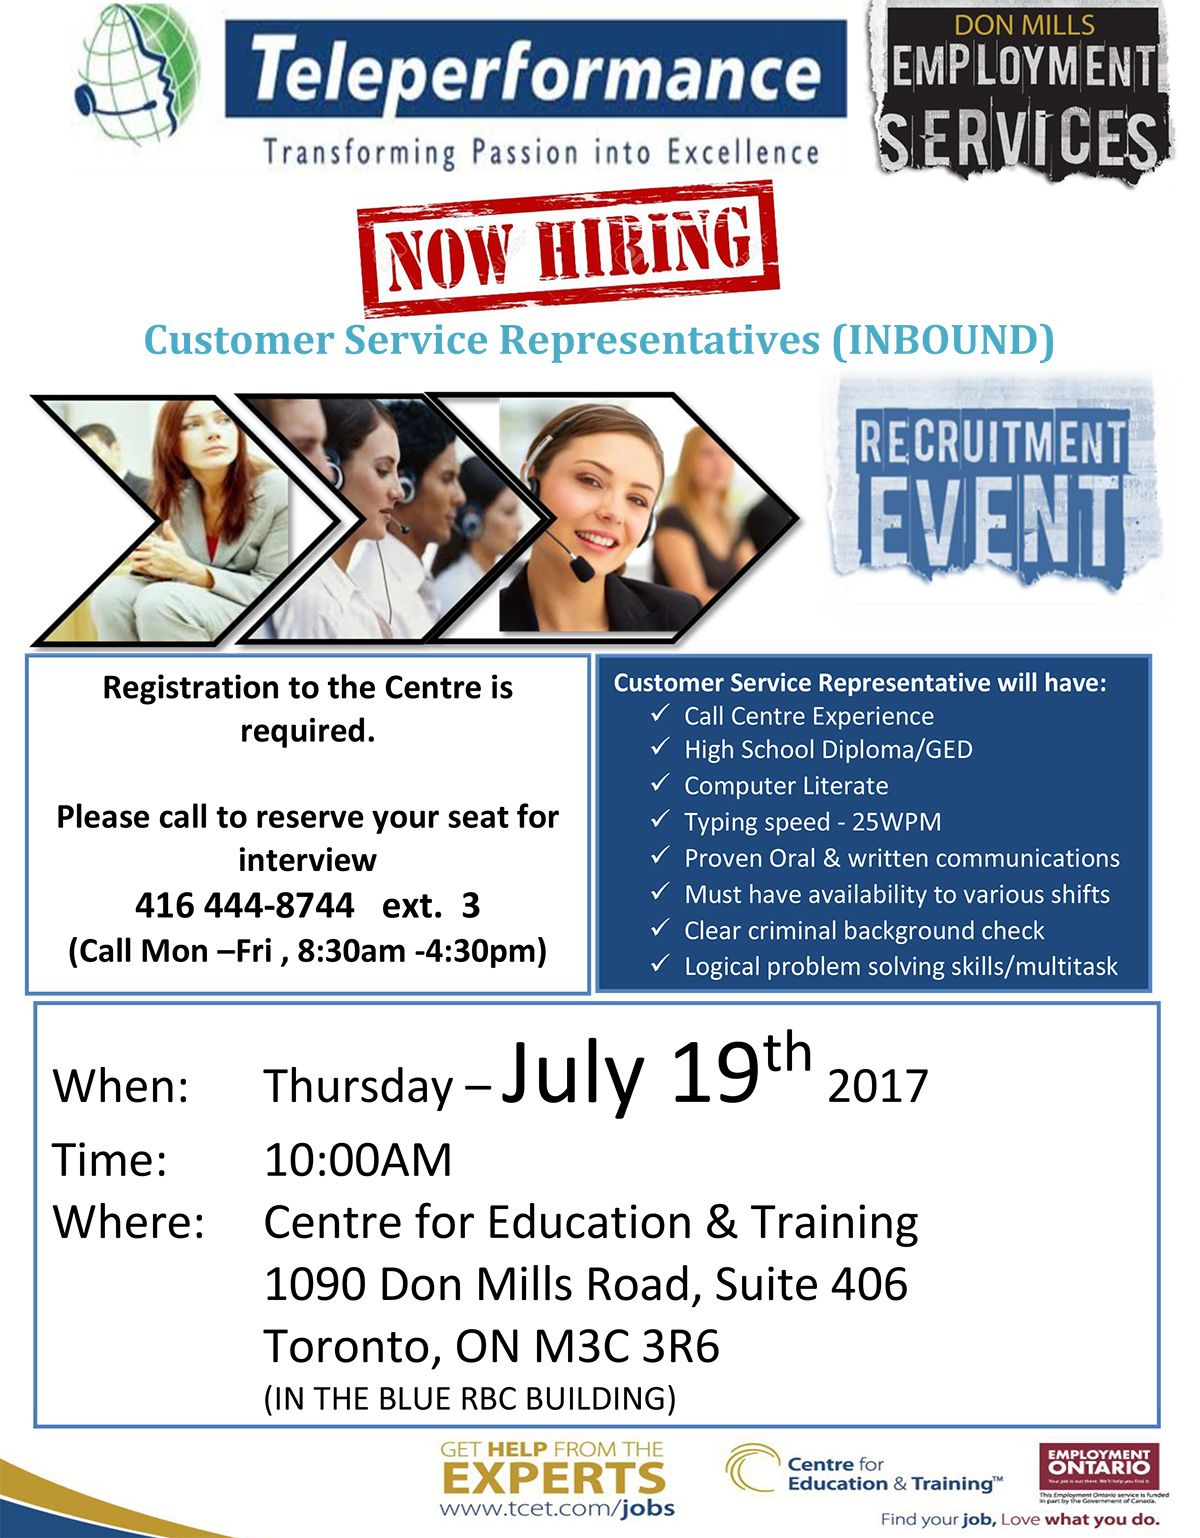 Need a Job? Don't miss the teleperformance hiring event, Thursday